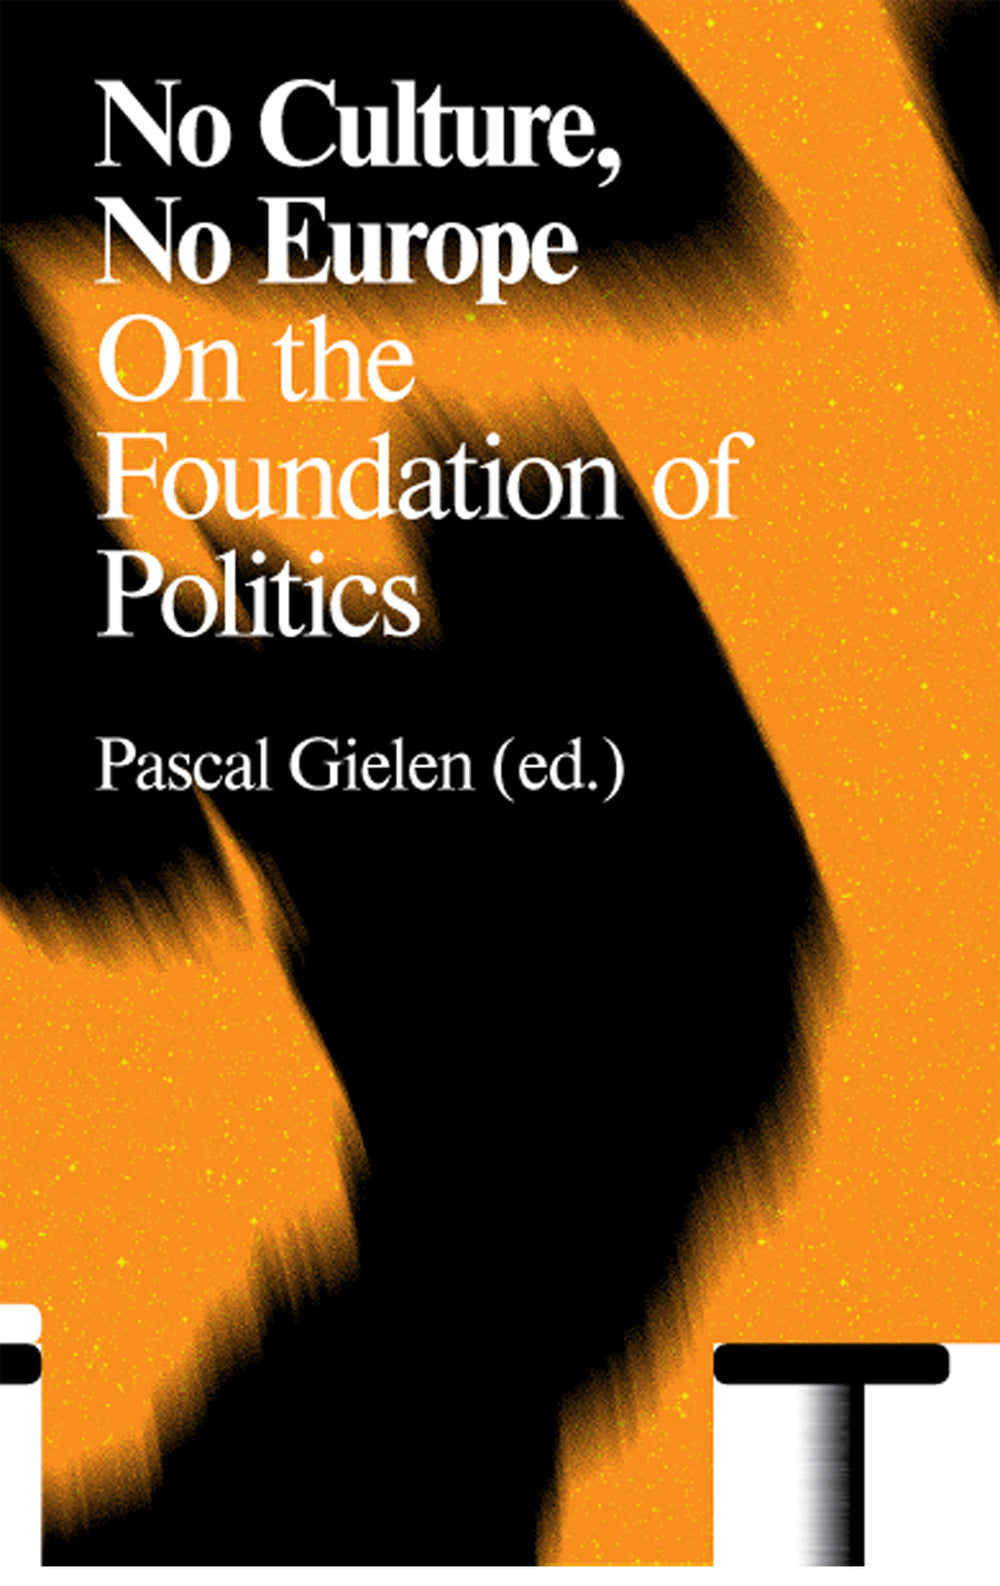 No Culture, No Europe: On The Foundation Of Politics, Pascal Gielen (Ed.) - The Library Project